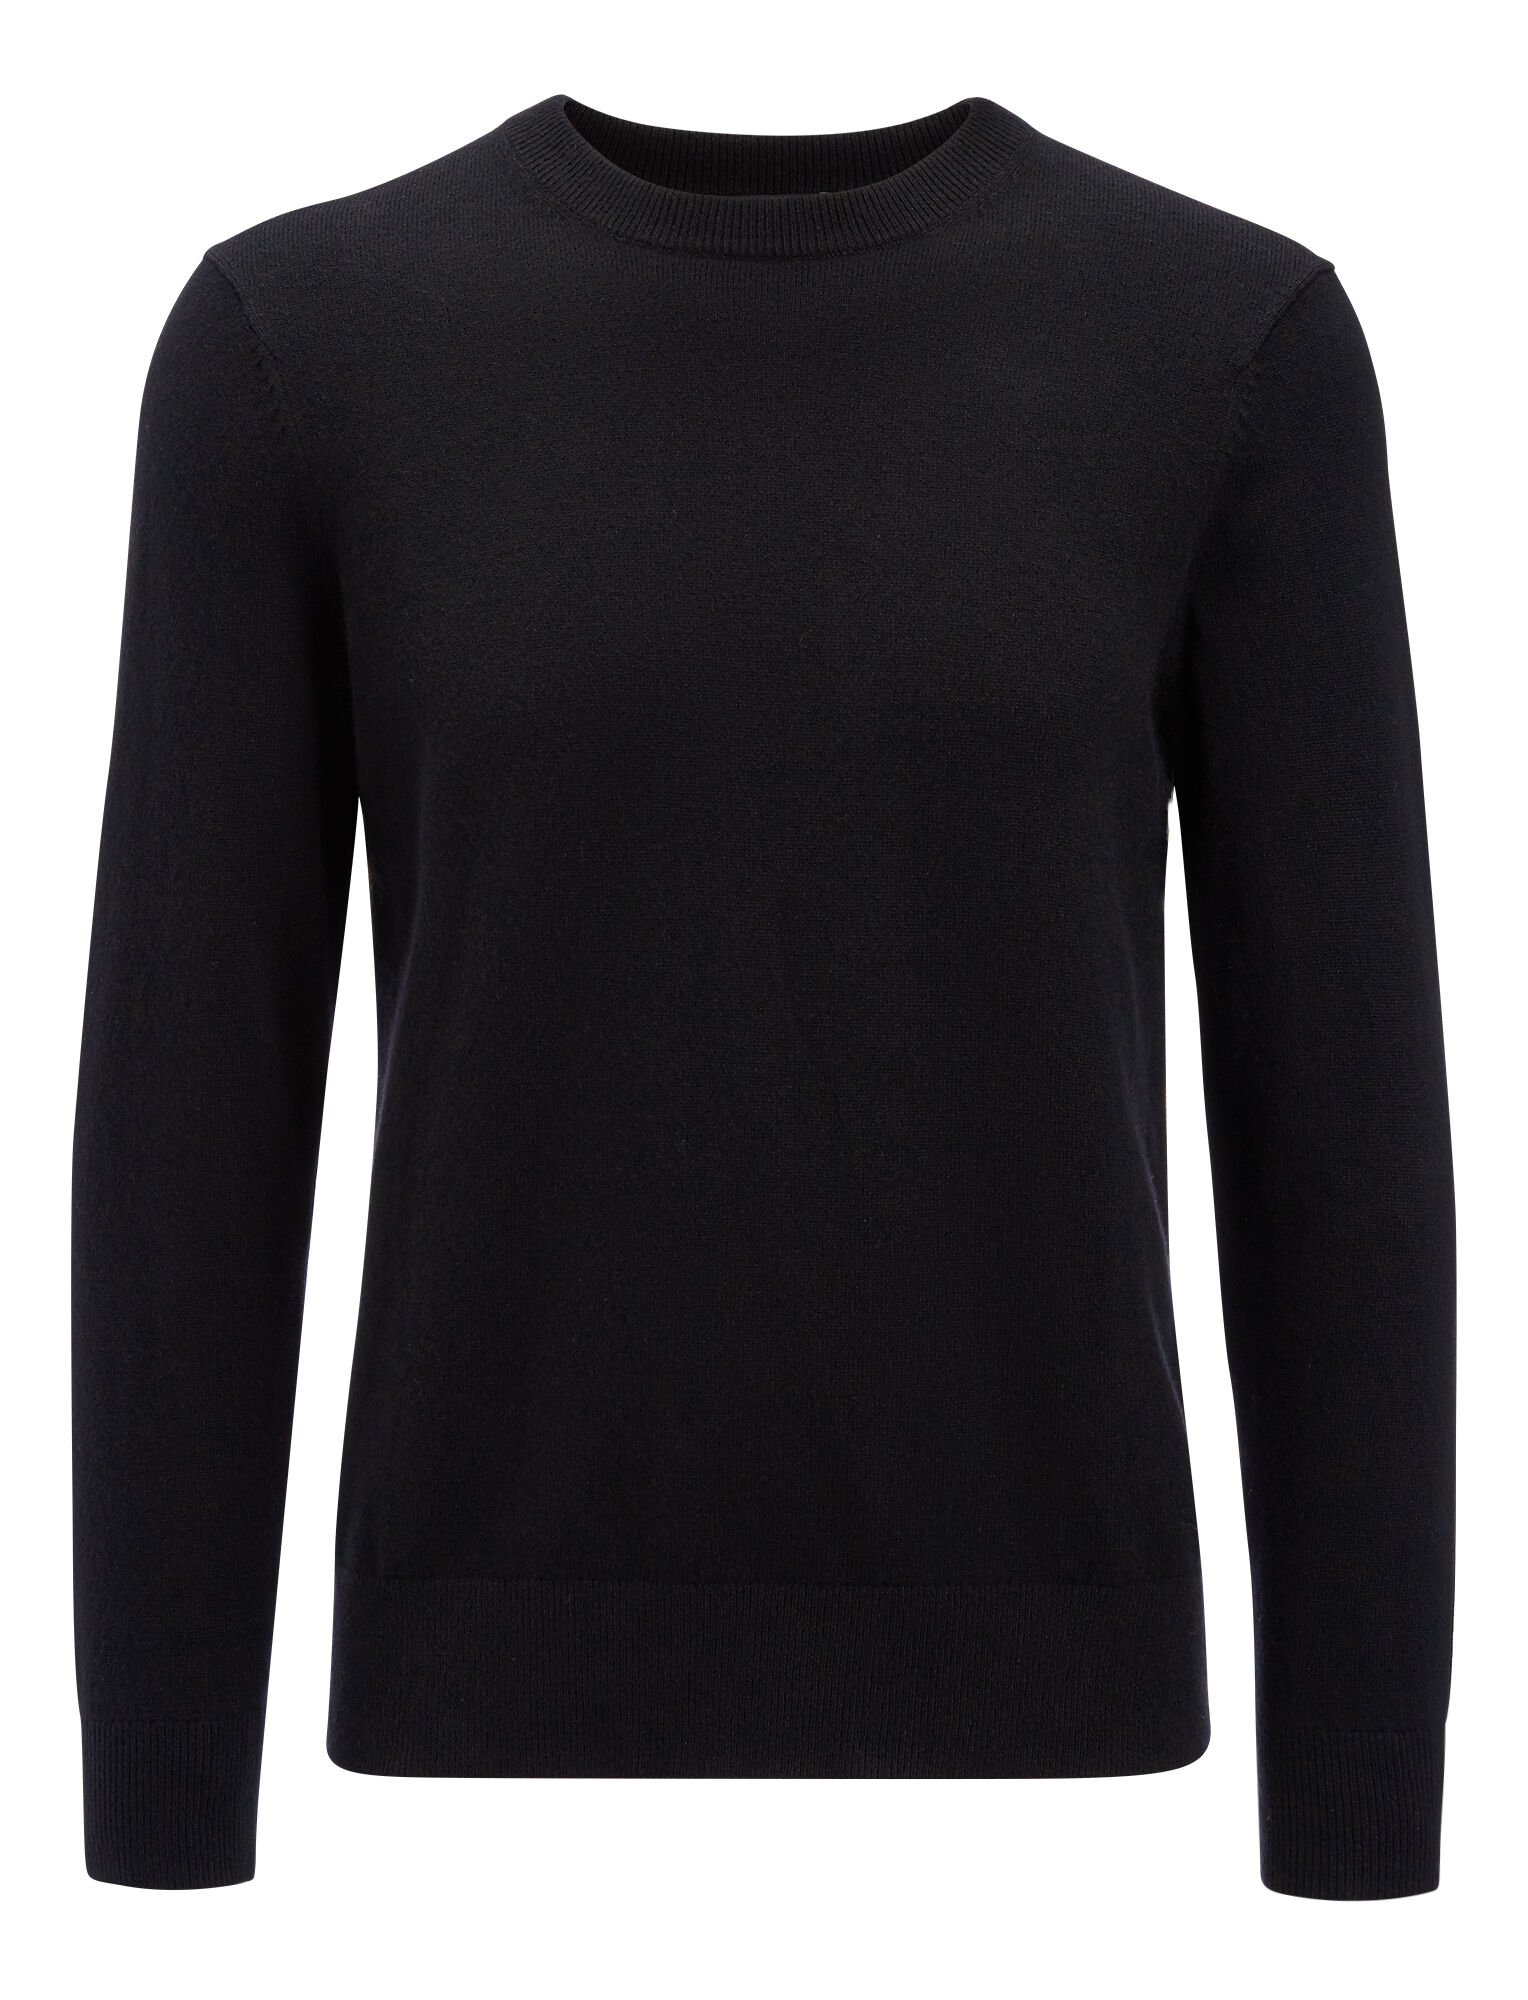 Joseph, Mongolian Cashmere Knit, in BLACK